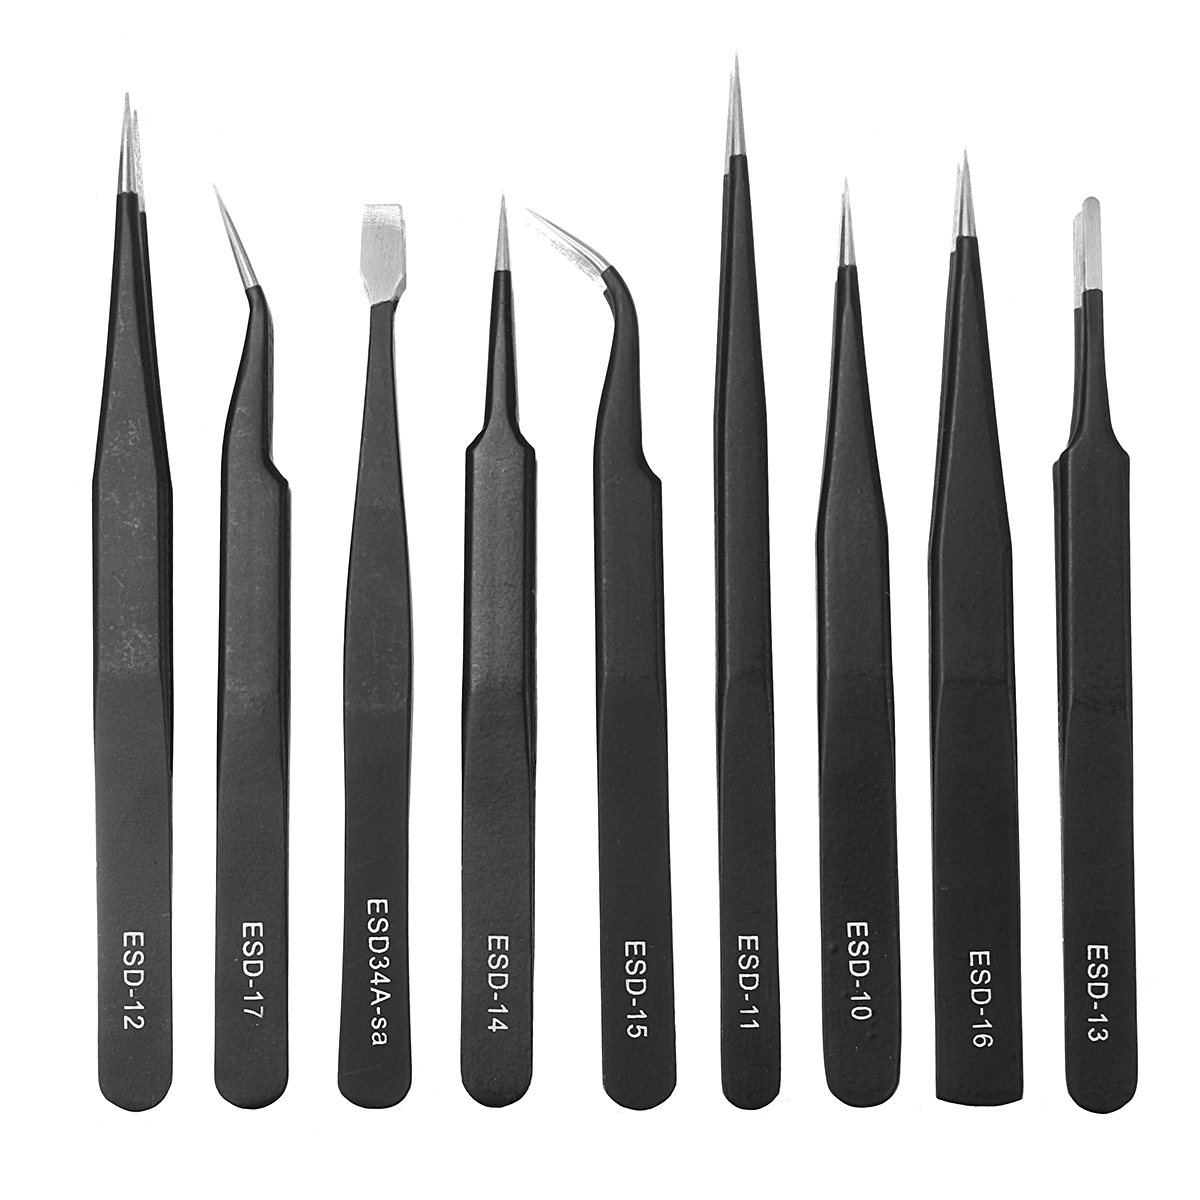 DANIU 9pcs ESD Stainless Steel Anti-static Tweezers with Storage Bag Teardown Electronic Maintenance Tool